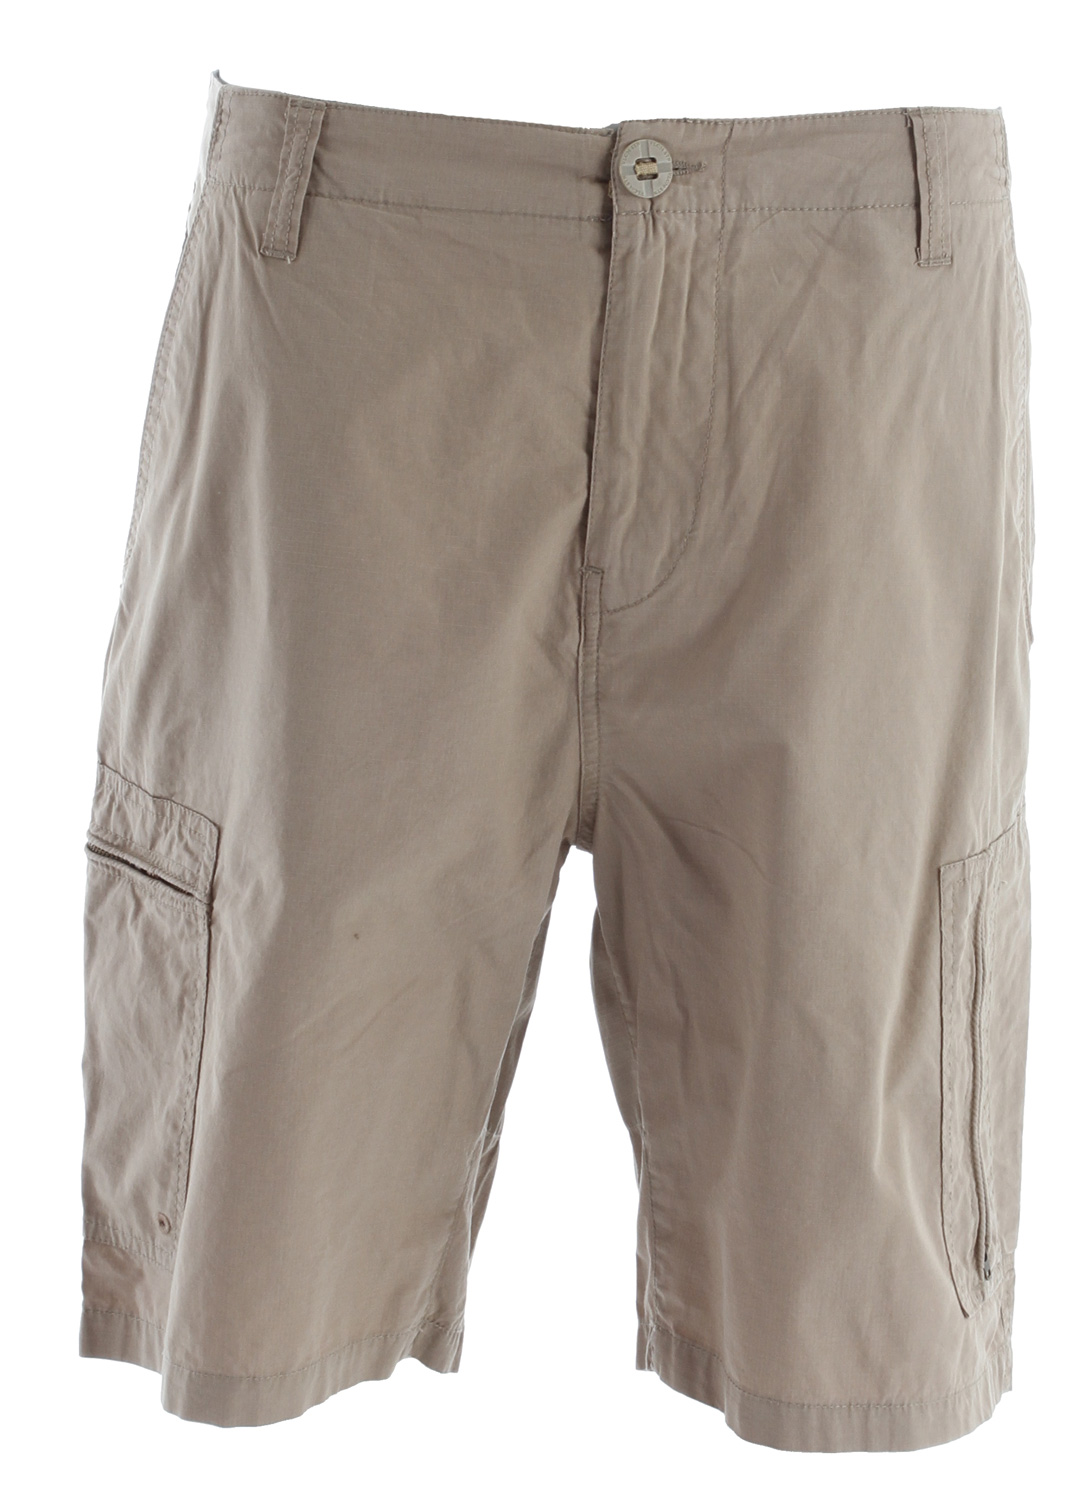 "Surf Key Features of the Volcom Vega Cargo Shorts: 21"" Outseem Relaxed fit cargo short Pre-laundered 100% cotton ripstop Scout collection - $37.95"